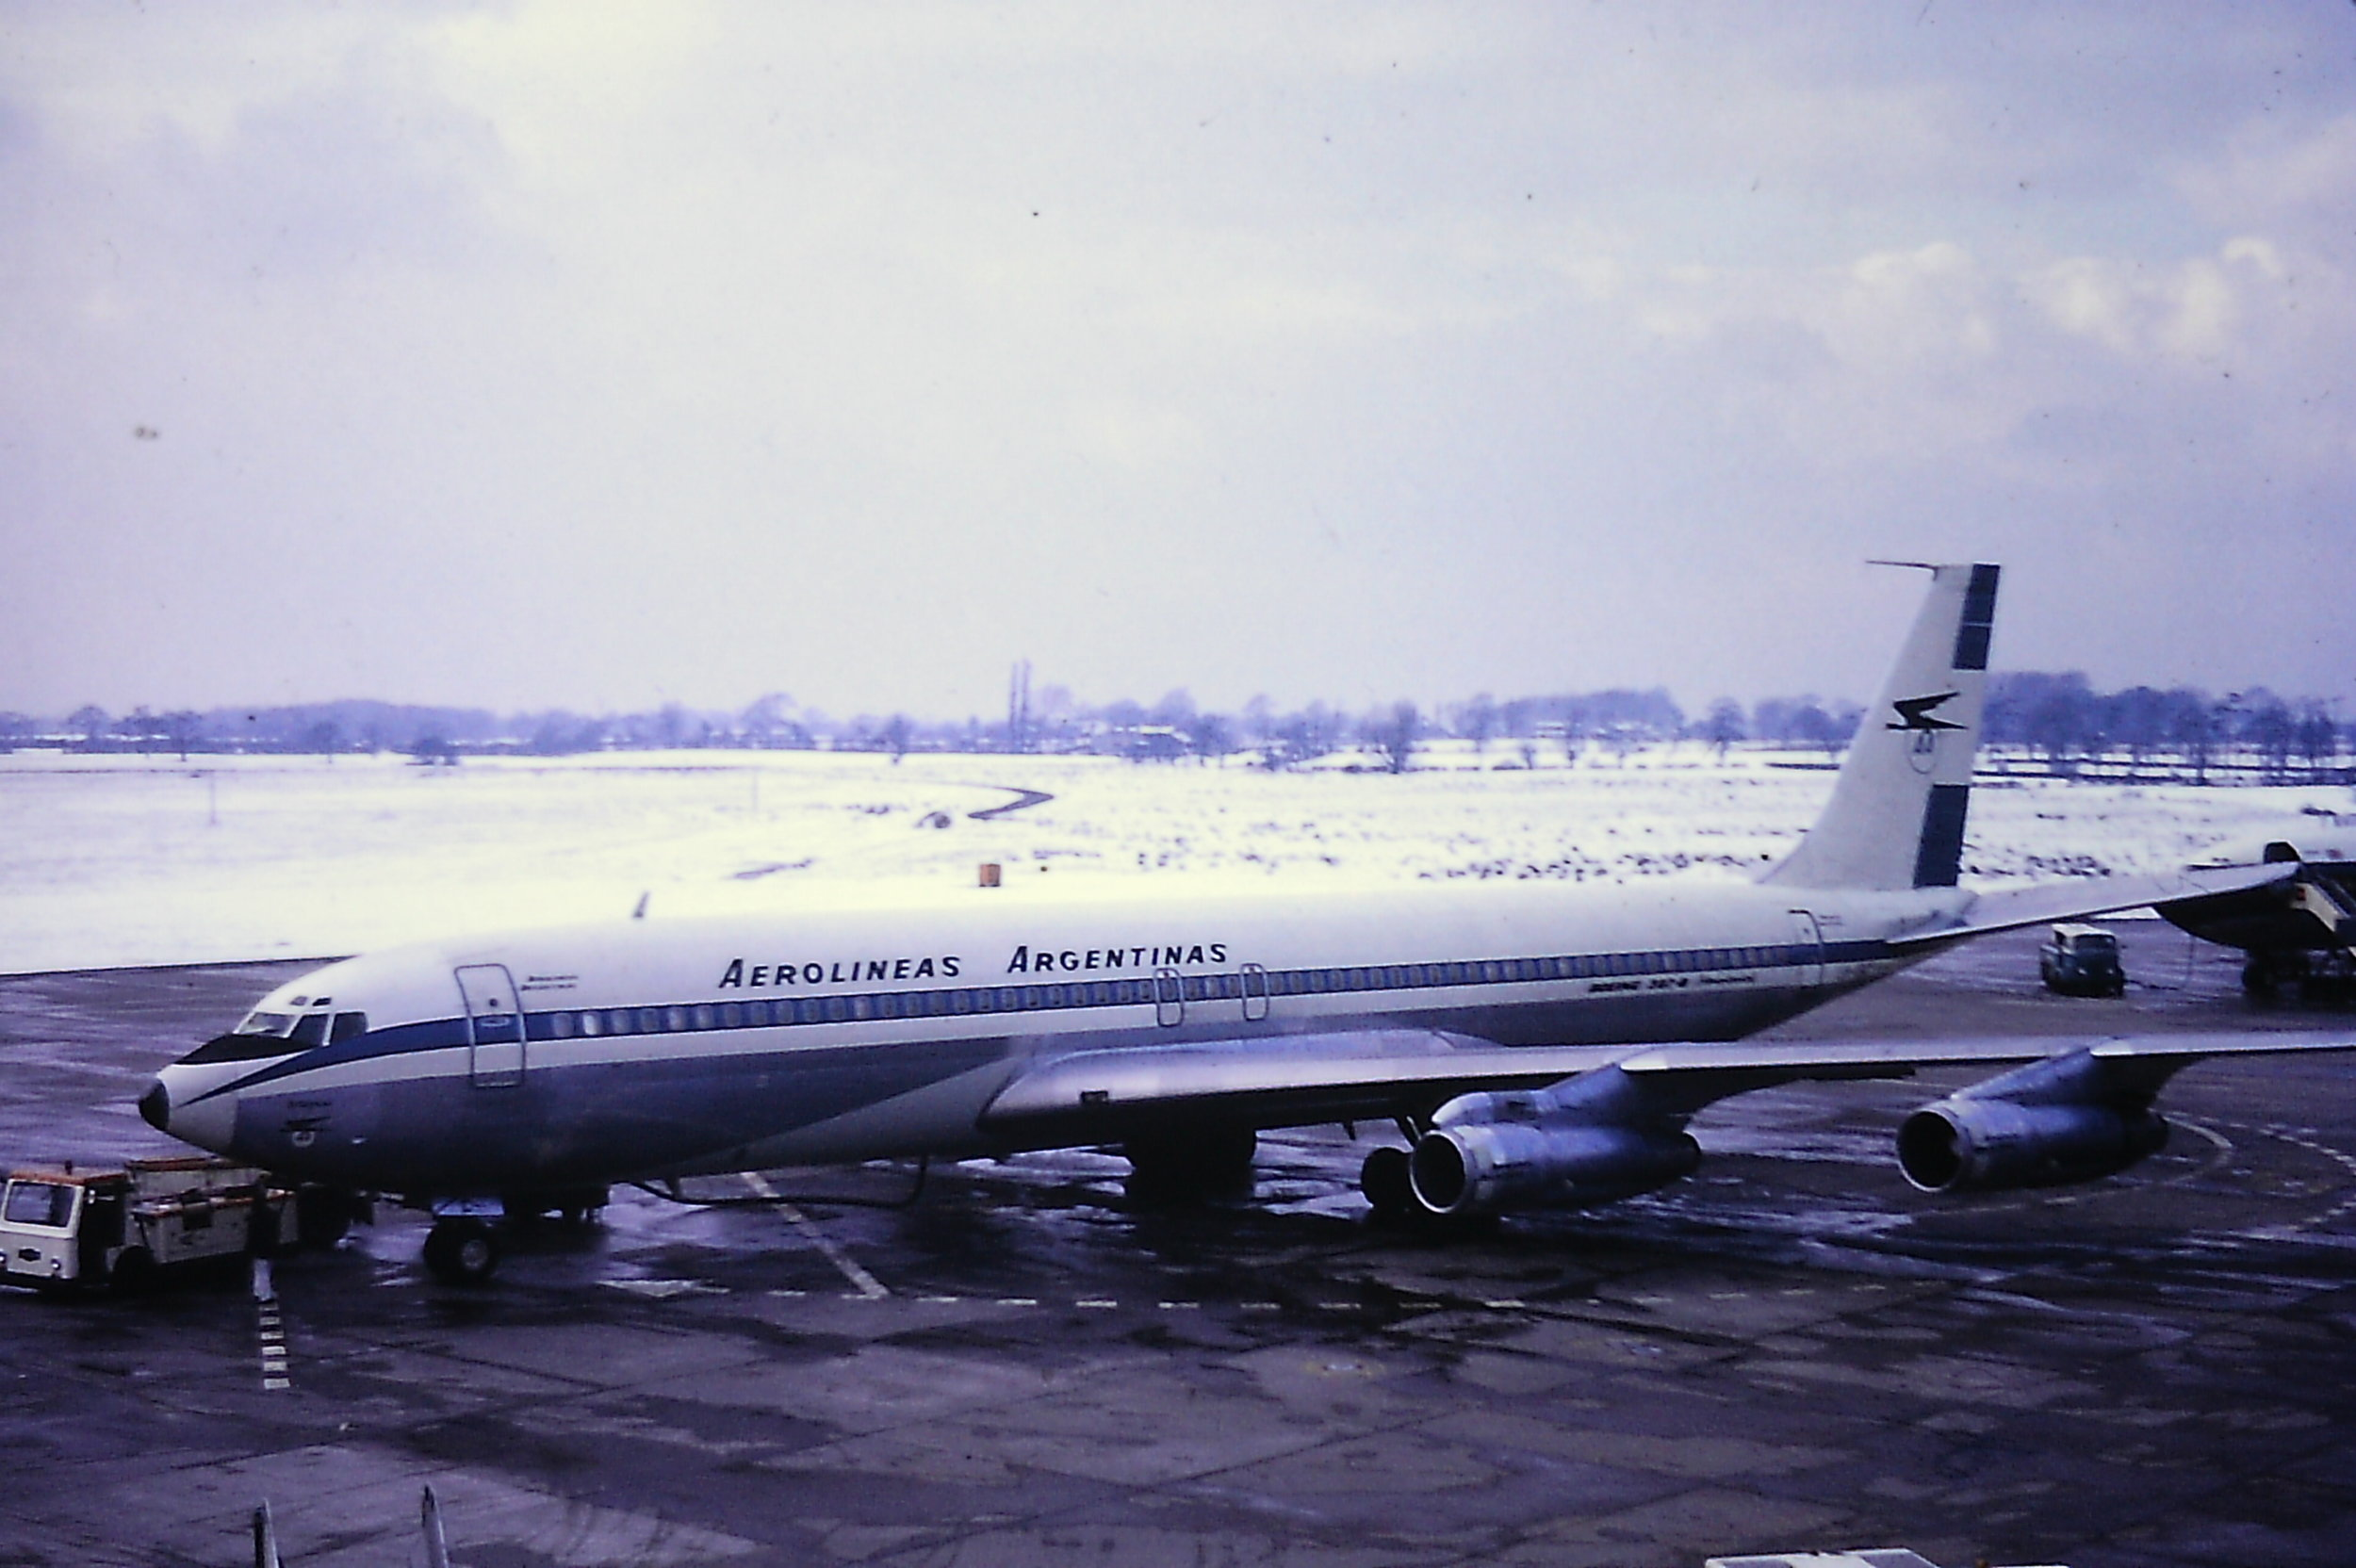 4th March 1970 turned into being a classic in bound diversion day for Manchester due to heavy snow in the South of England. Probably the pick of 25 aircraft which diverted in was this Aerolineas Argentinas Boeing 707 LV-ISC - seen here on Pier B. A huge thanks to Eric Wright for sharing this wonderful memory. In these days the chemical Urea (don't ask!) was spread on the aprons as an exceedingly effective de-icer…as you can see!